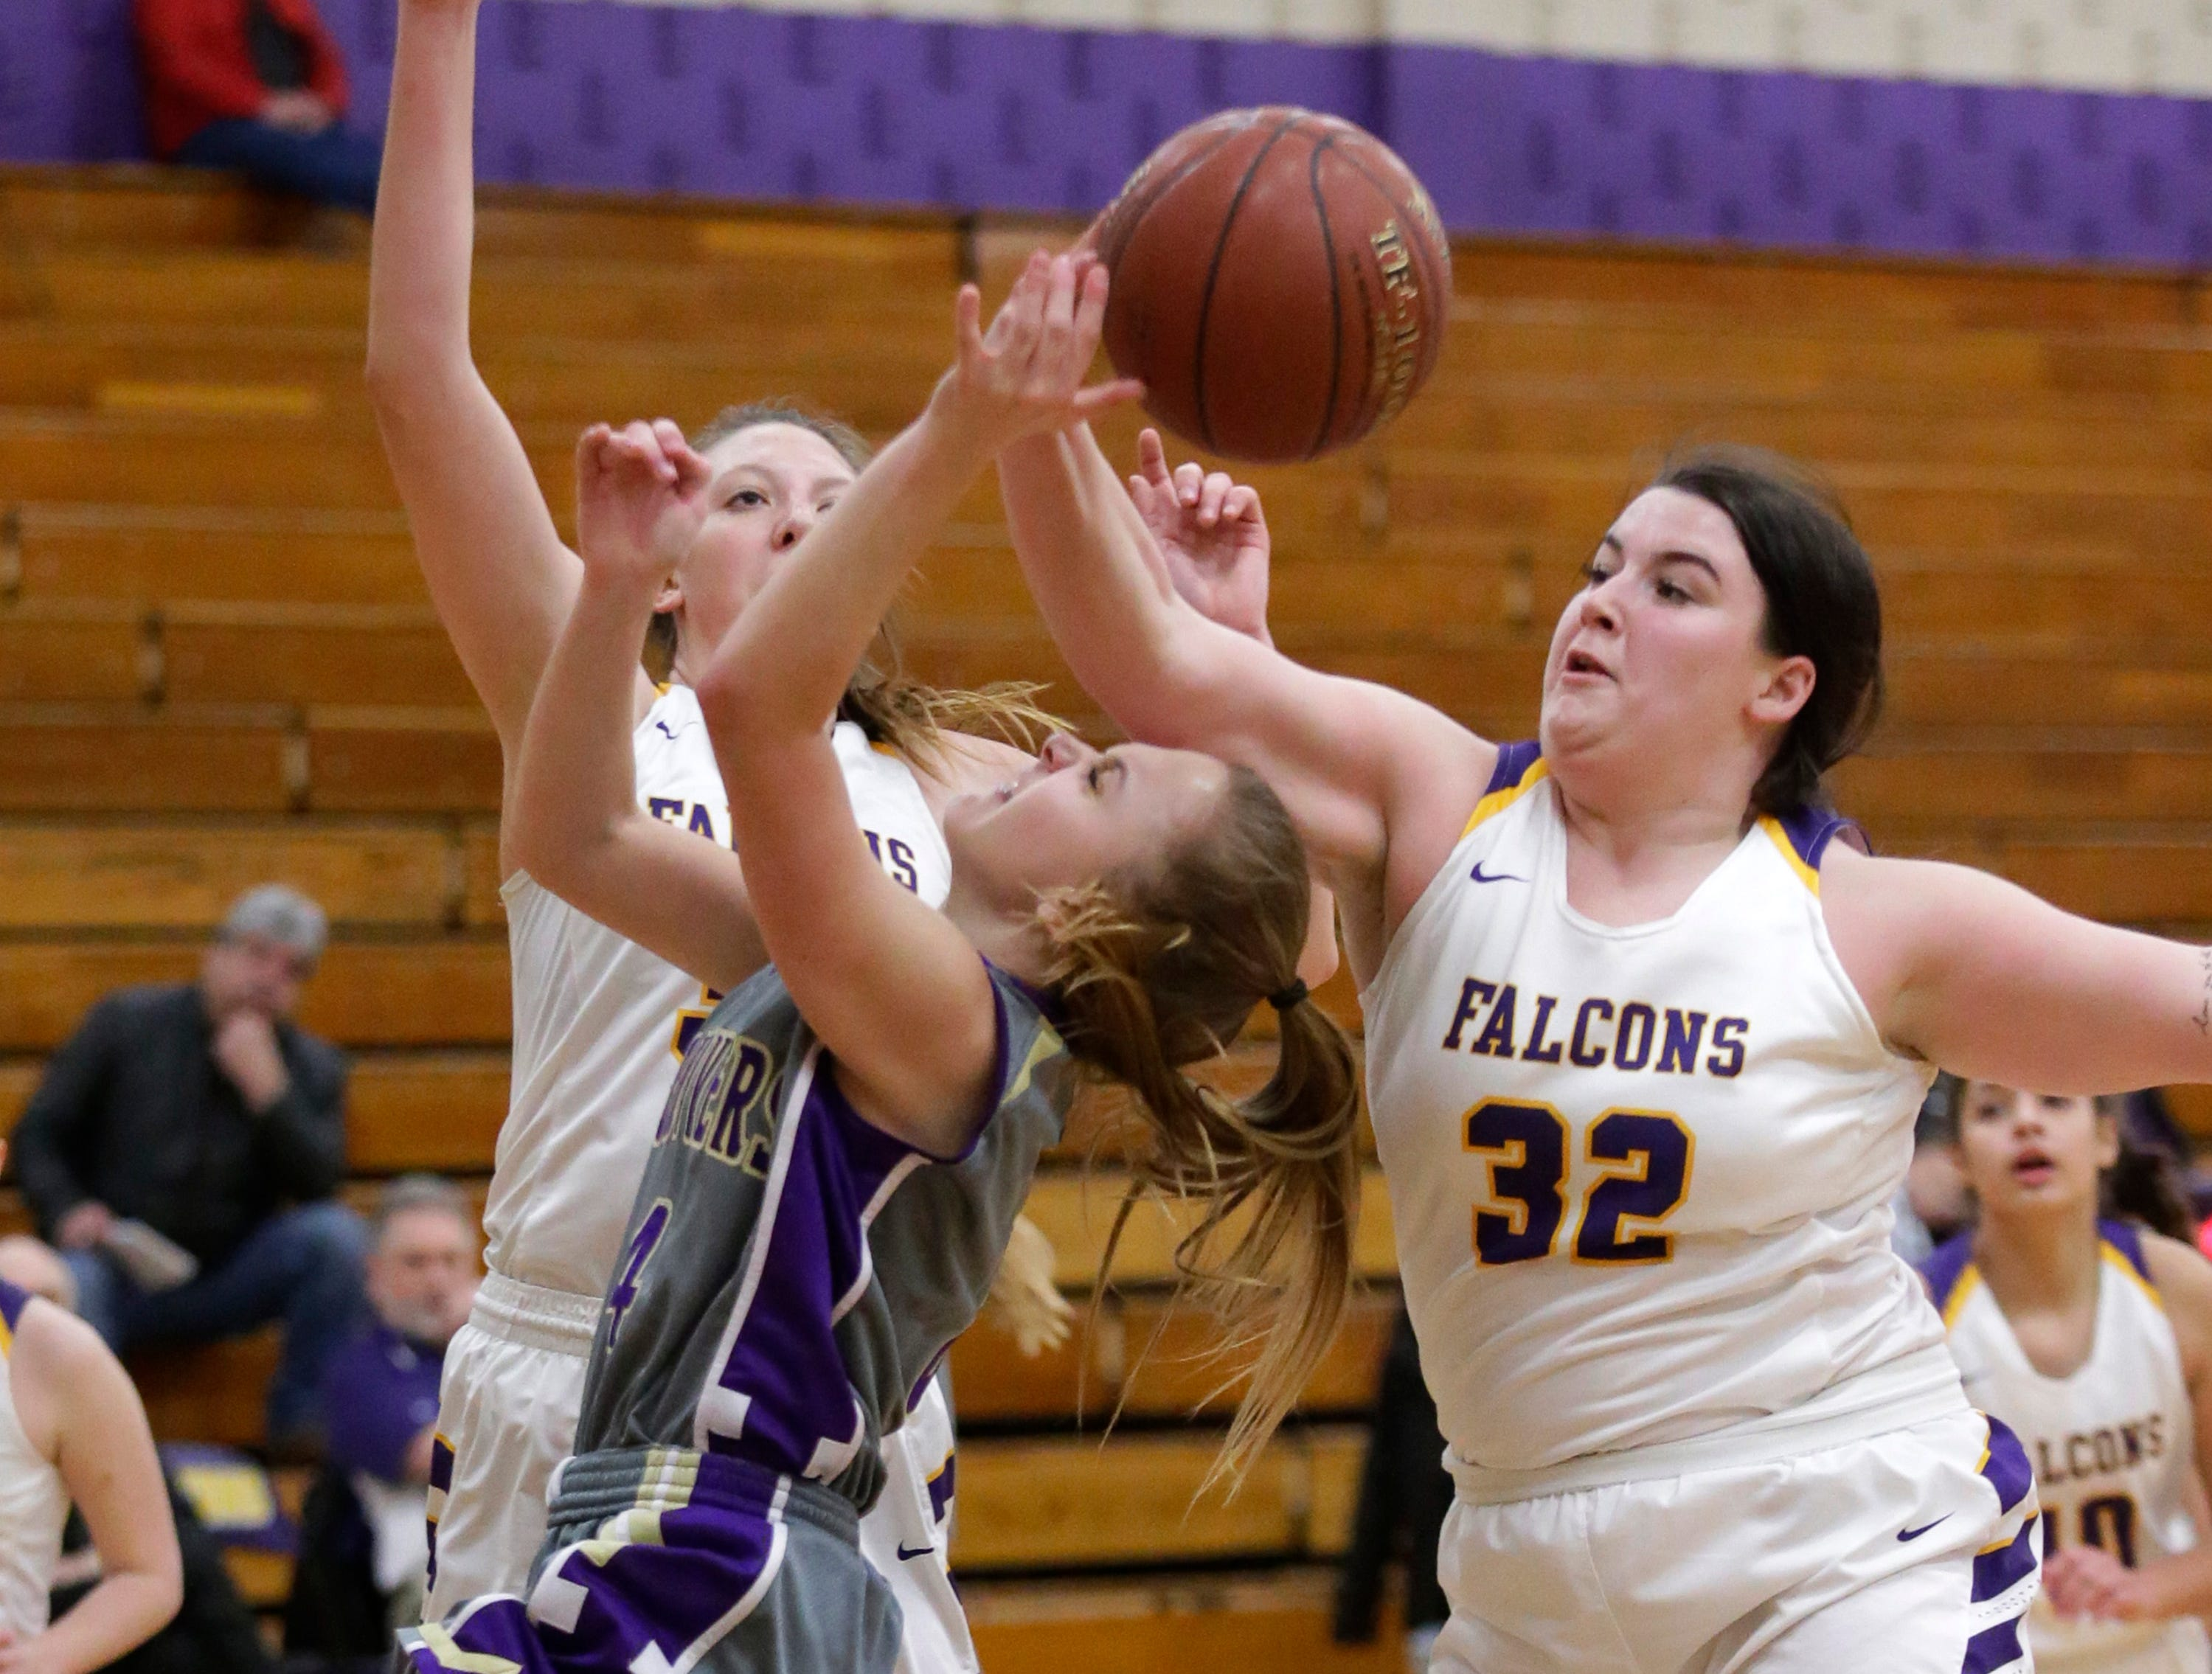 Two Rivers' Mackenzie Greenwood (4, in grey) grips the ball while Sheboygan Falls' Alayna Milne (32) tries to pull the ball from Greenwood's grasp., Thursday, February 14, 2019, in Sheboygan Falls, Wis.